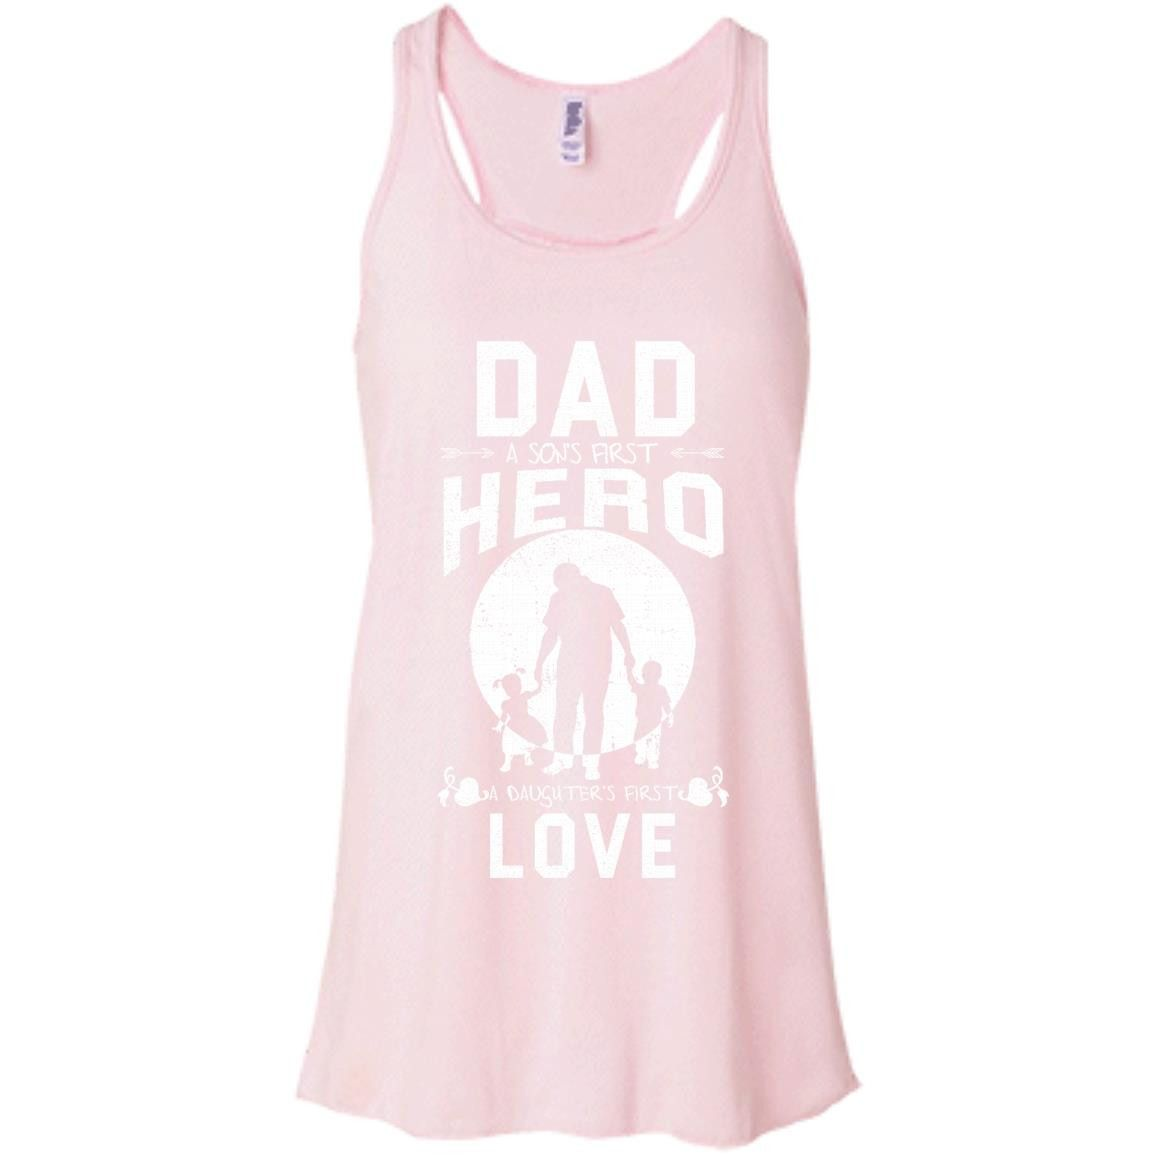 dad a son's first hero a daughter's first love Bella + Canvas Flowy Racerback Tank